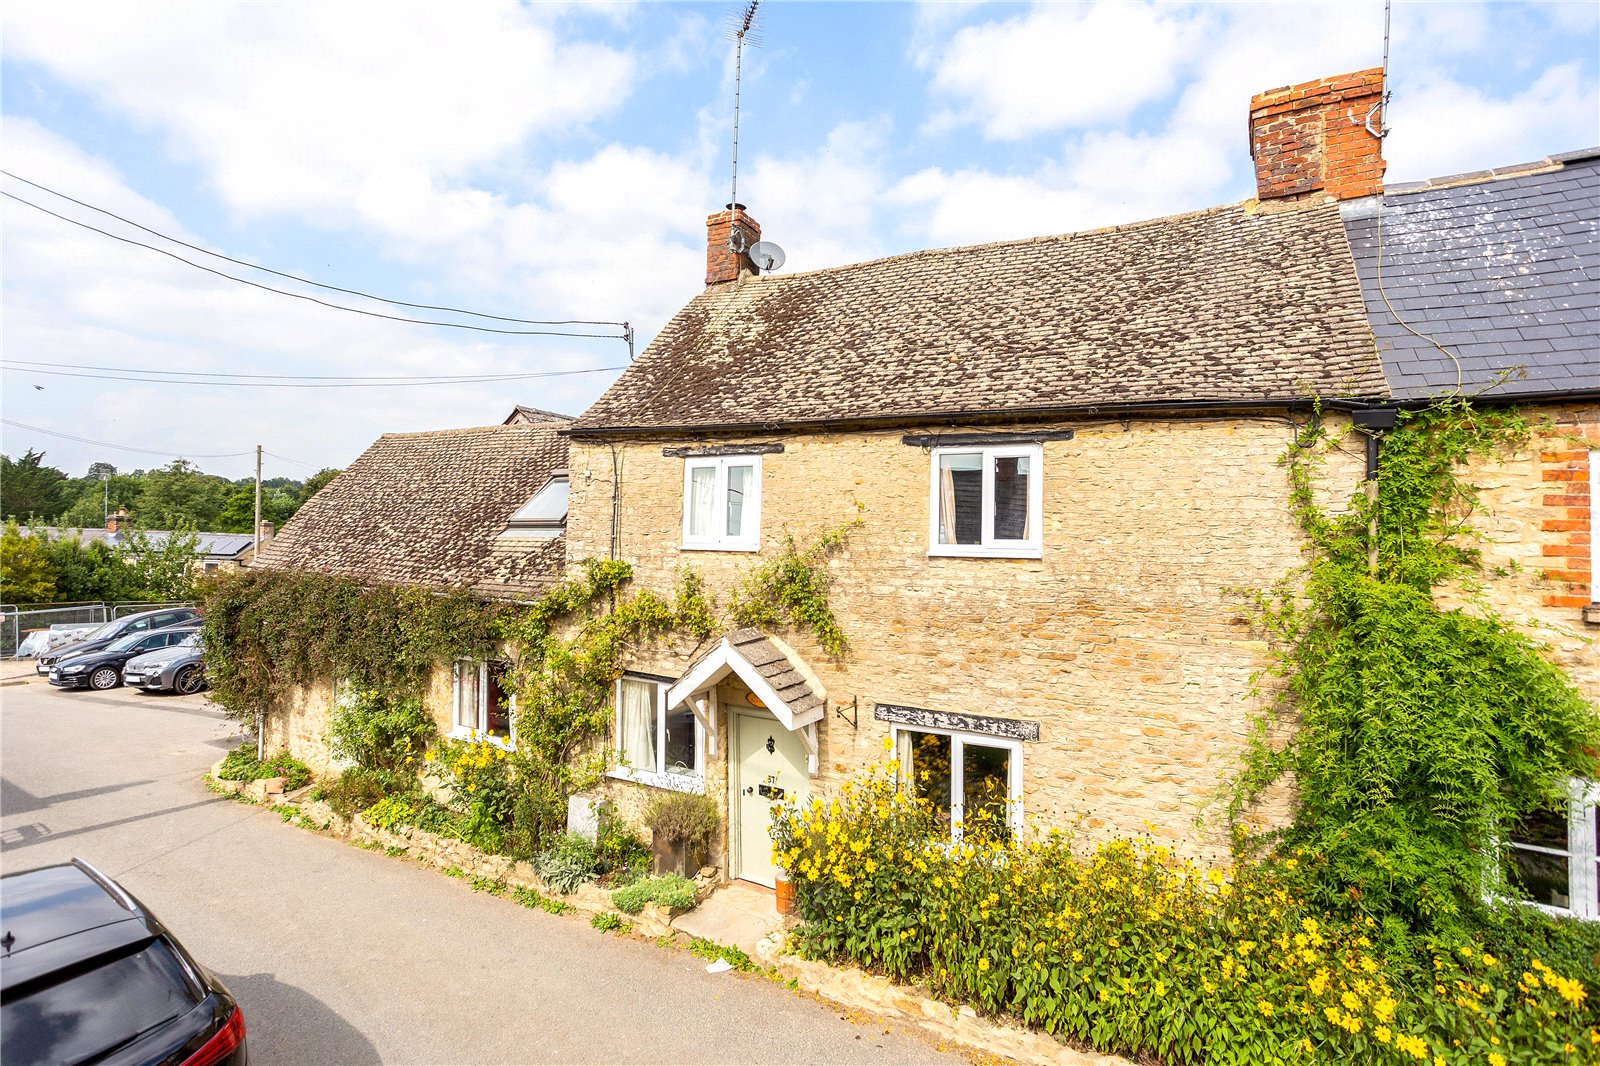 South Street, Middle Barton, Chipping Norton, OX7